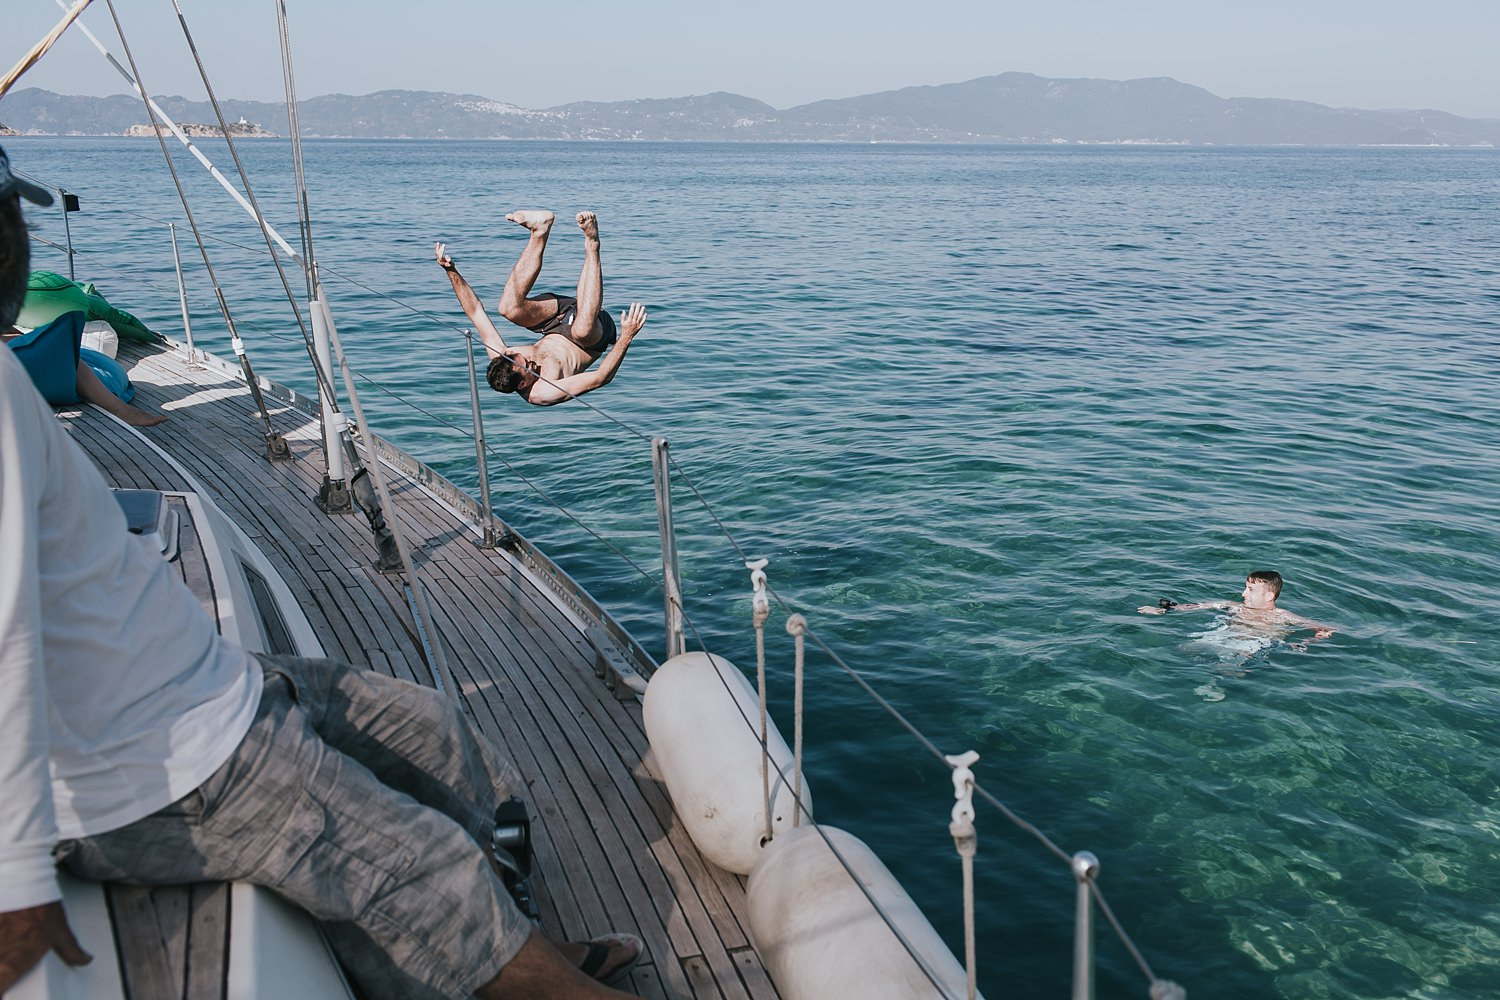 diving into the water on greek islands